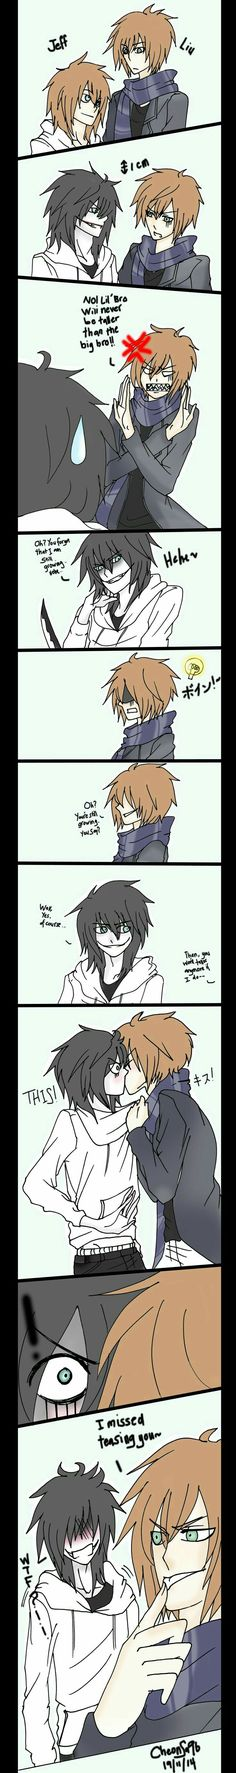 Jeff the Killer, Homicidal Liu, brothers, funny, text, comic, yaoi, kiss, blushing, height; Creepypasta